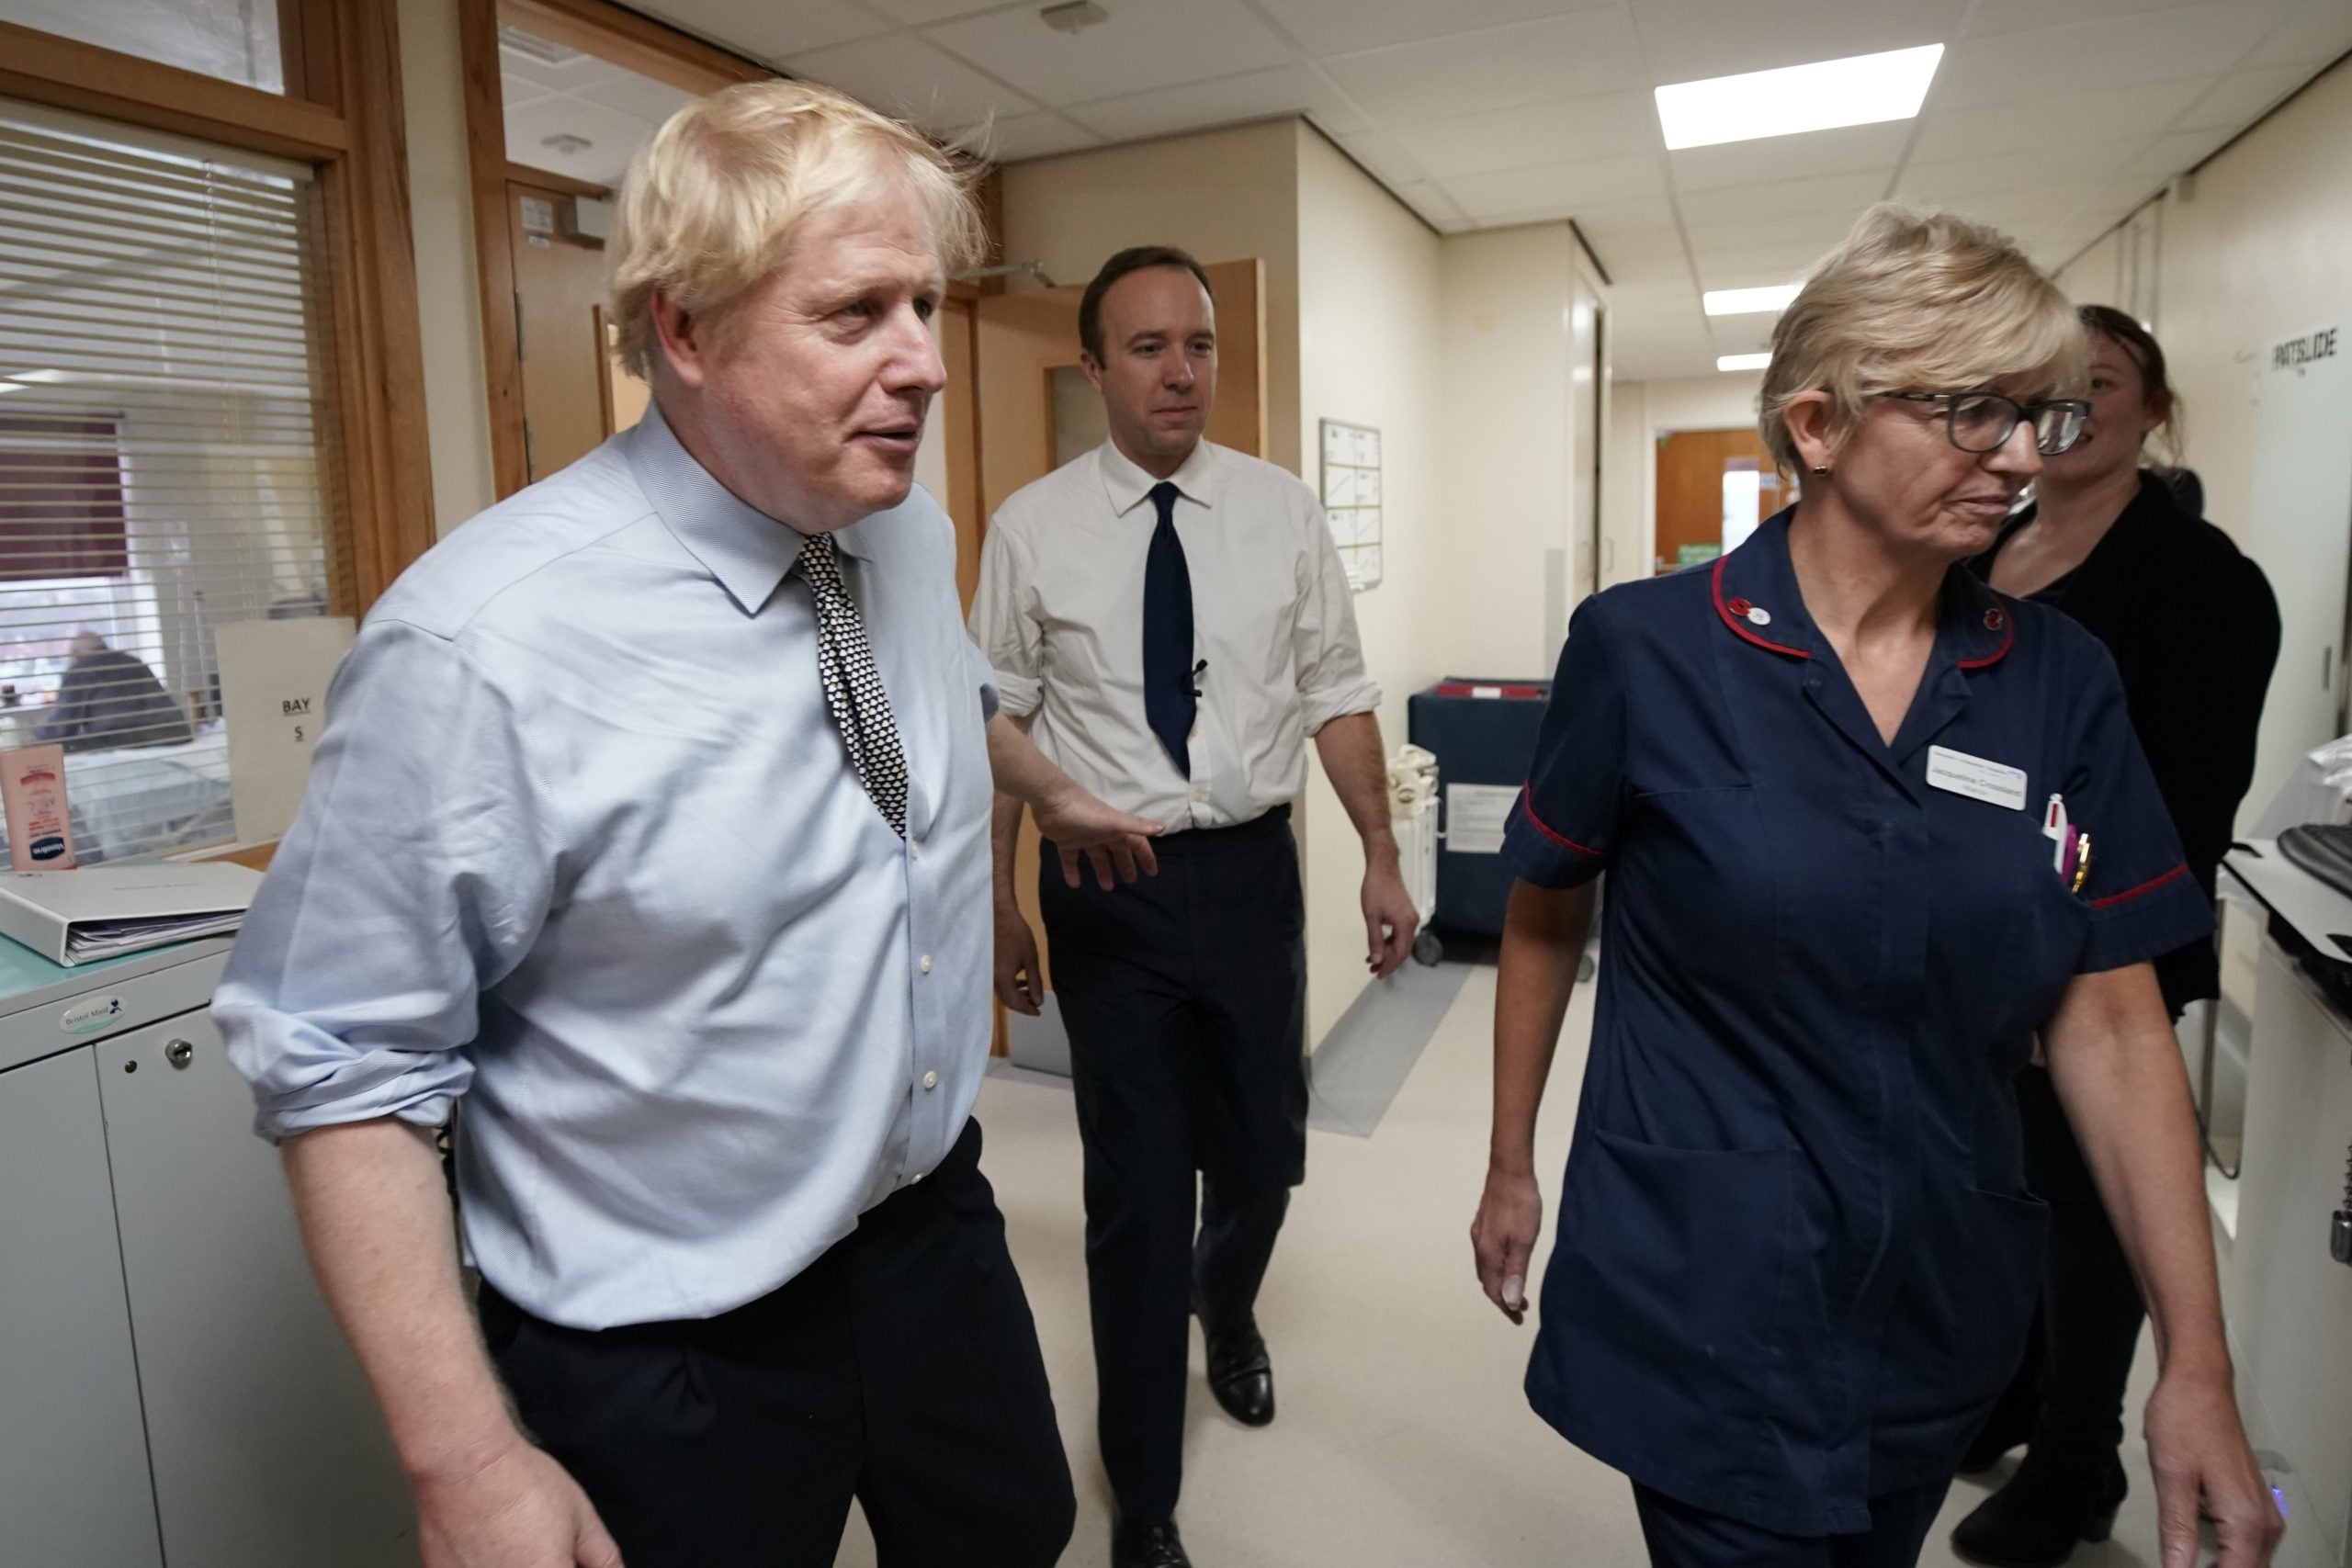 We were told a Boris Johnson victory would spell the end of the NHS. How worried should we be?